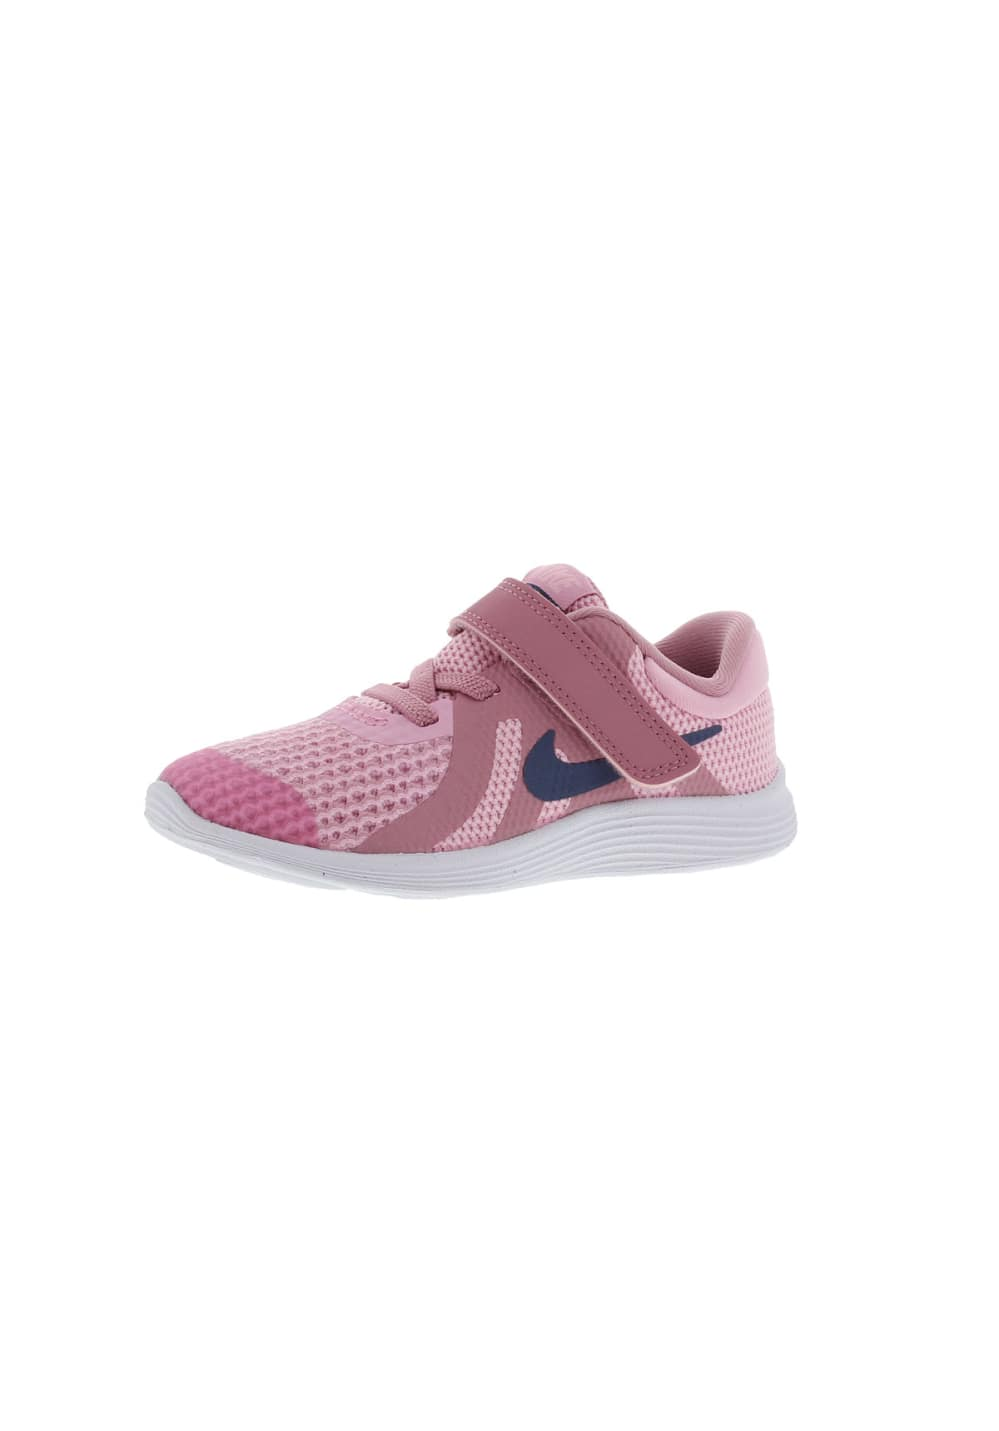 35d5910659 Nike Revolution 4 (tdv) - Running shoes - Pink | 21RUN